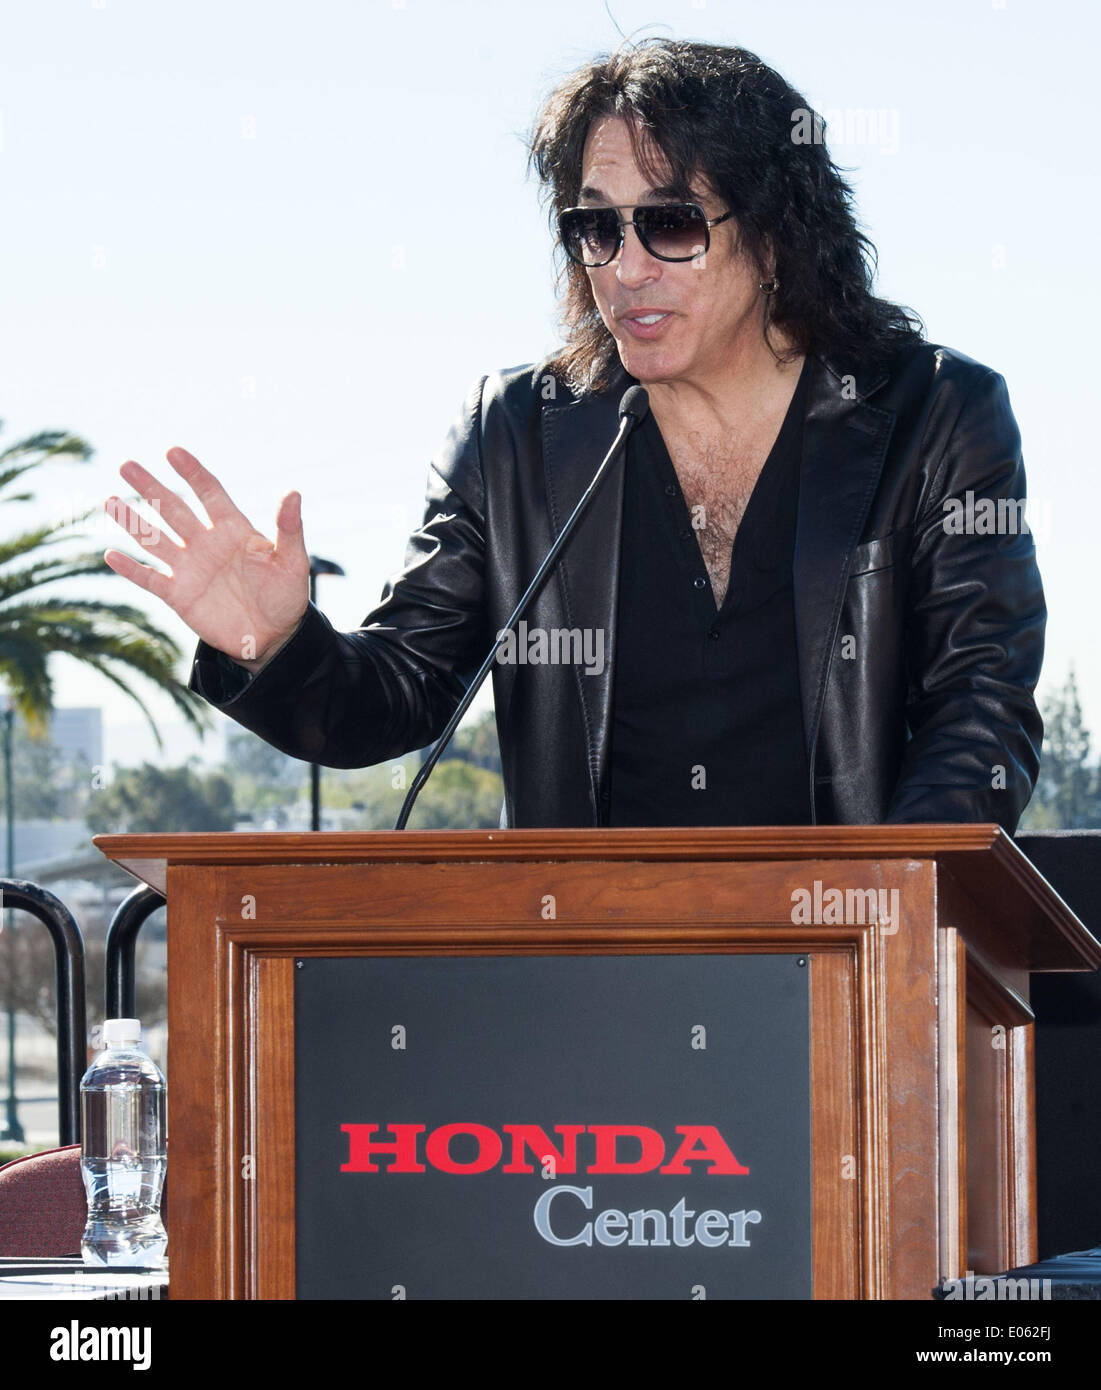 Anaheim, California, USA. 10th Mar, 2014. PAUL STANLEY talks about the new LA Kiss Arena Football team on Monday morning at Honda Center. The newly formed LA Kiss, Arena Football's newest team, held their first media event at The Honda Center on Monday morning, March 10, 2014, in Anaheim. The LA Kiss, named after famed rock and roll band, Kiss, boasts two members of the band as owners, Gene Simmons and Paul Stanley. The co-owners announced a free Kiss concert for all season ticket holders as part of a $99 dollar package. © David Bro/ZUMAPRESS.com/Alamy Live News - Stock Image